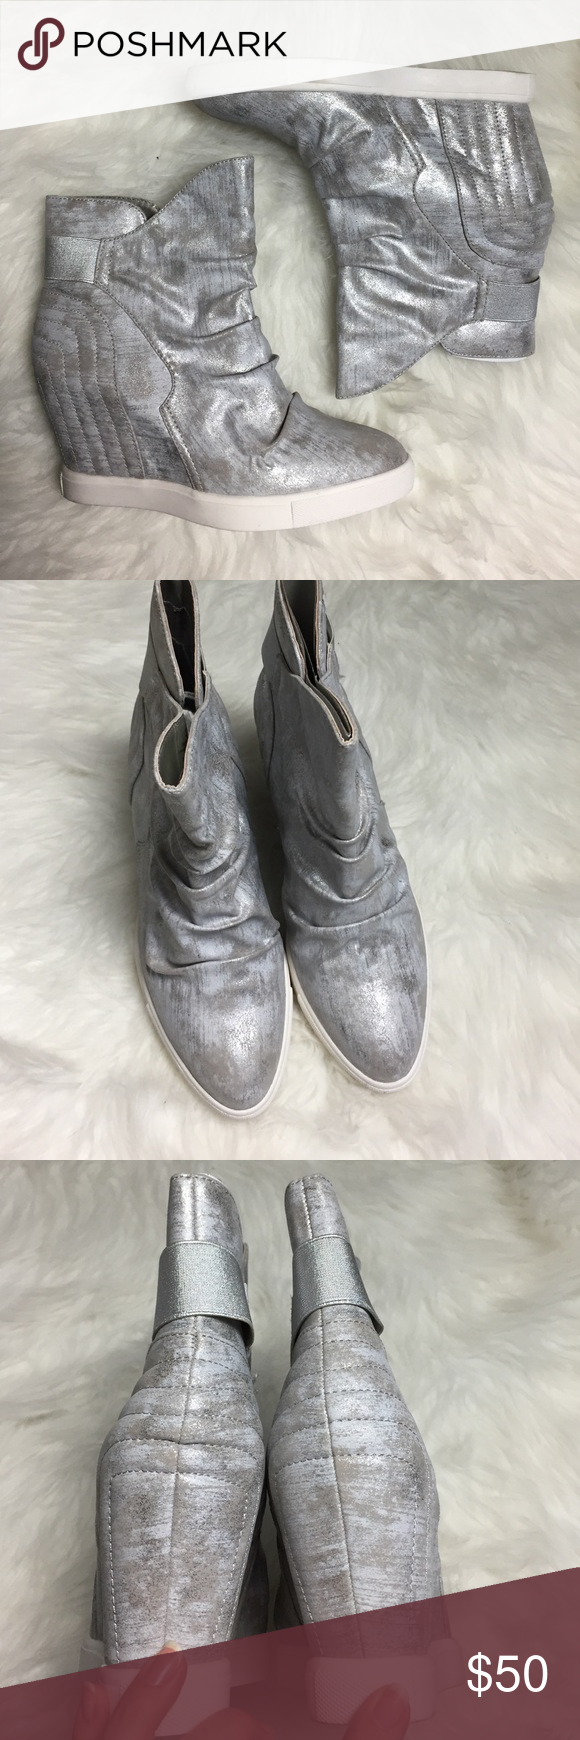 8a09906ff507 Jennifer Lopez Silver   Grey Wedge Bootie 10 So cool! Hidden 3